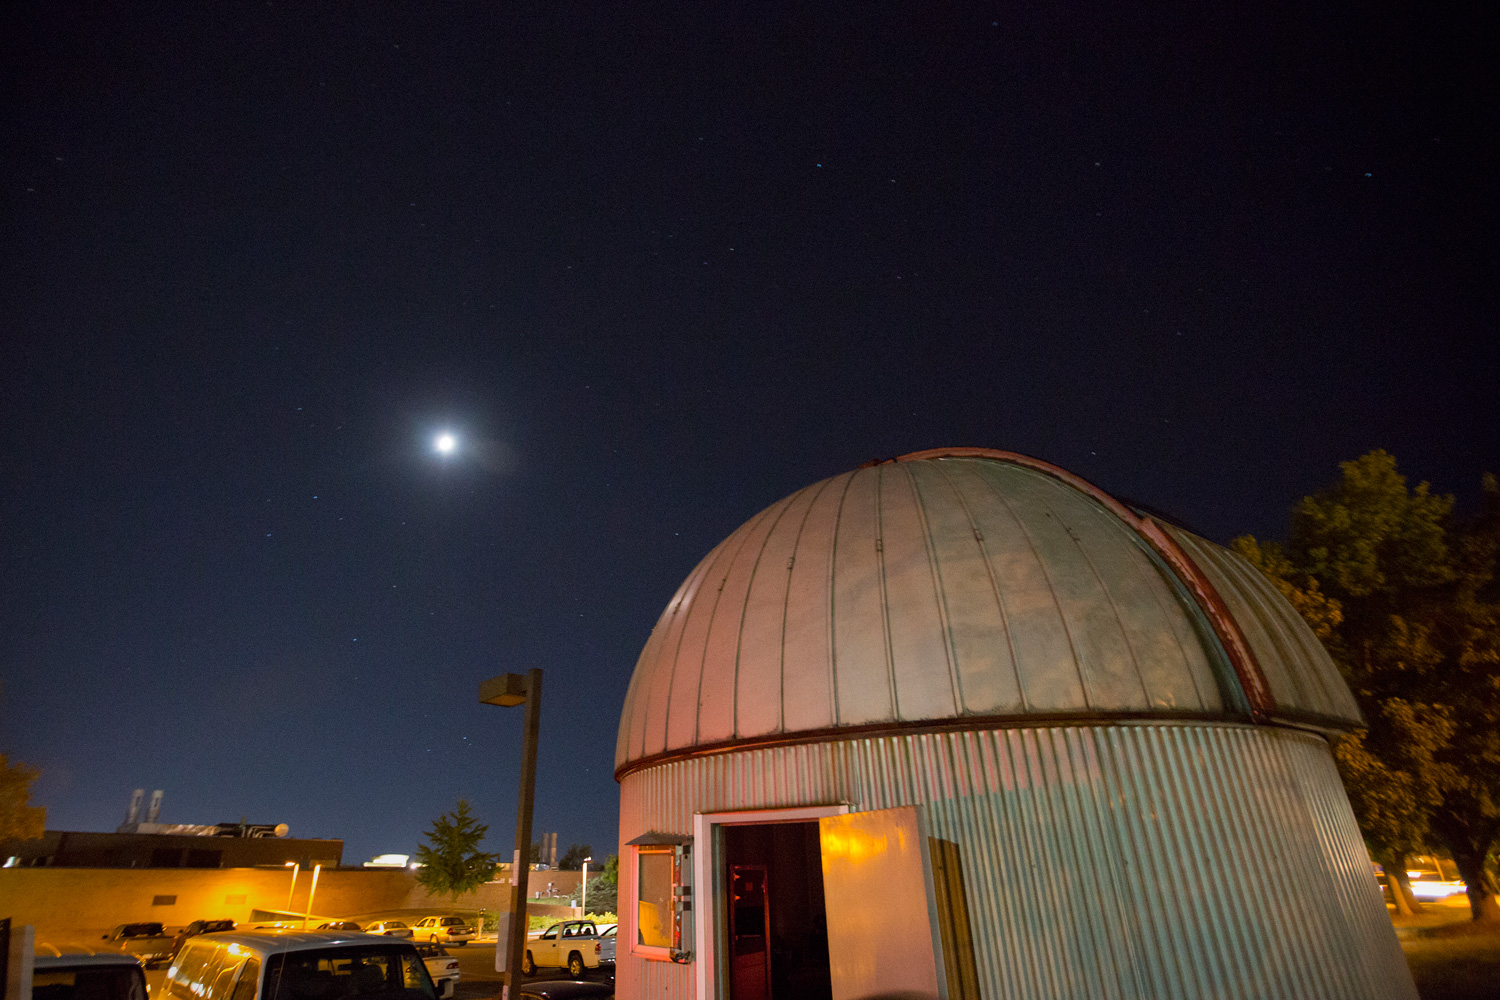 A view of the night sky above the Observatory.